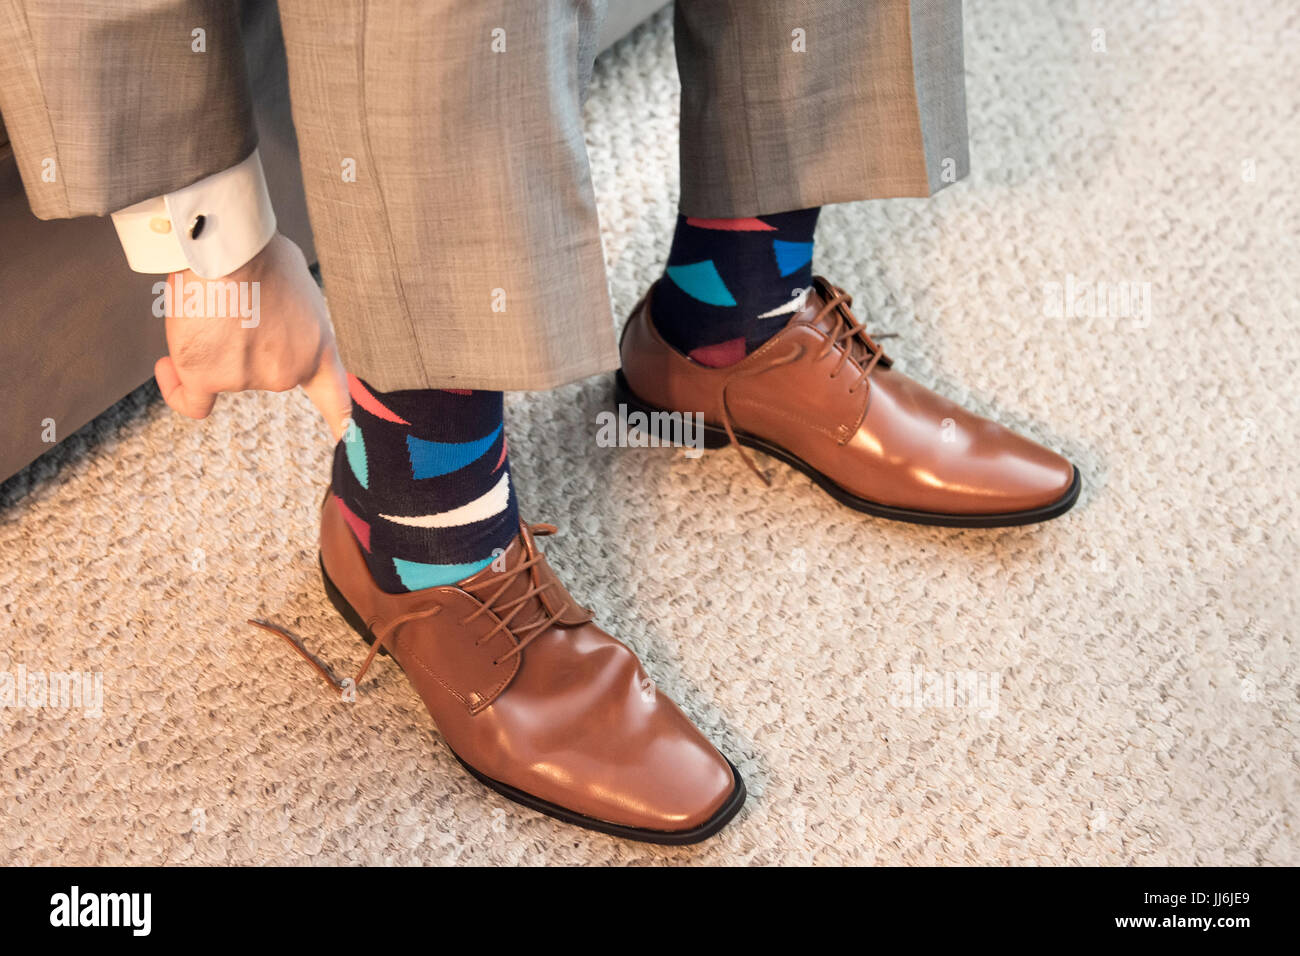 Man putting on brown dress shoes in formal wear with colorful socks for wedding - Stock Image